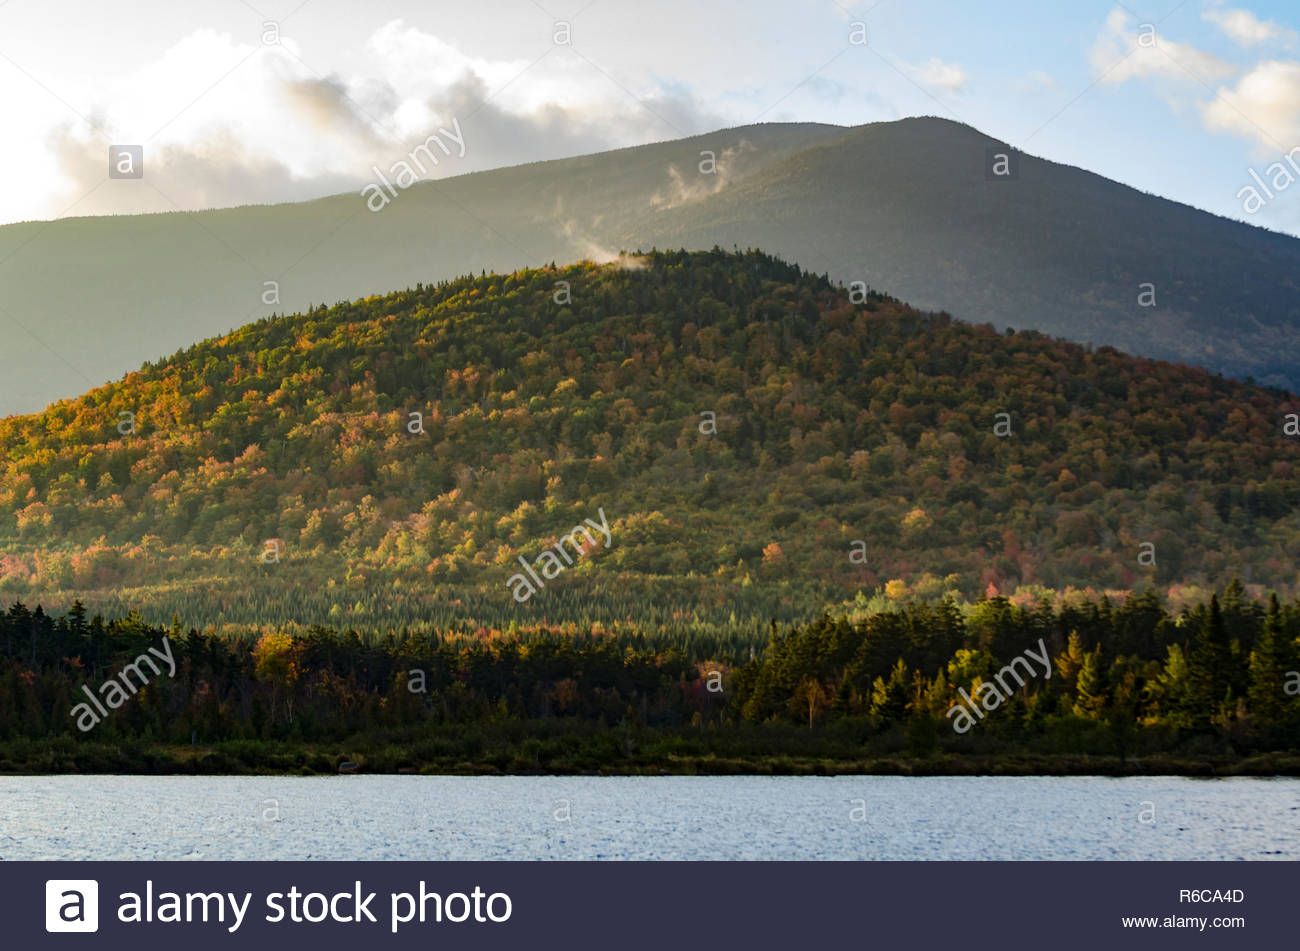 Morning sun lighting fall foliage on hills above pond - Stock Image